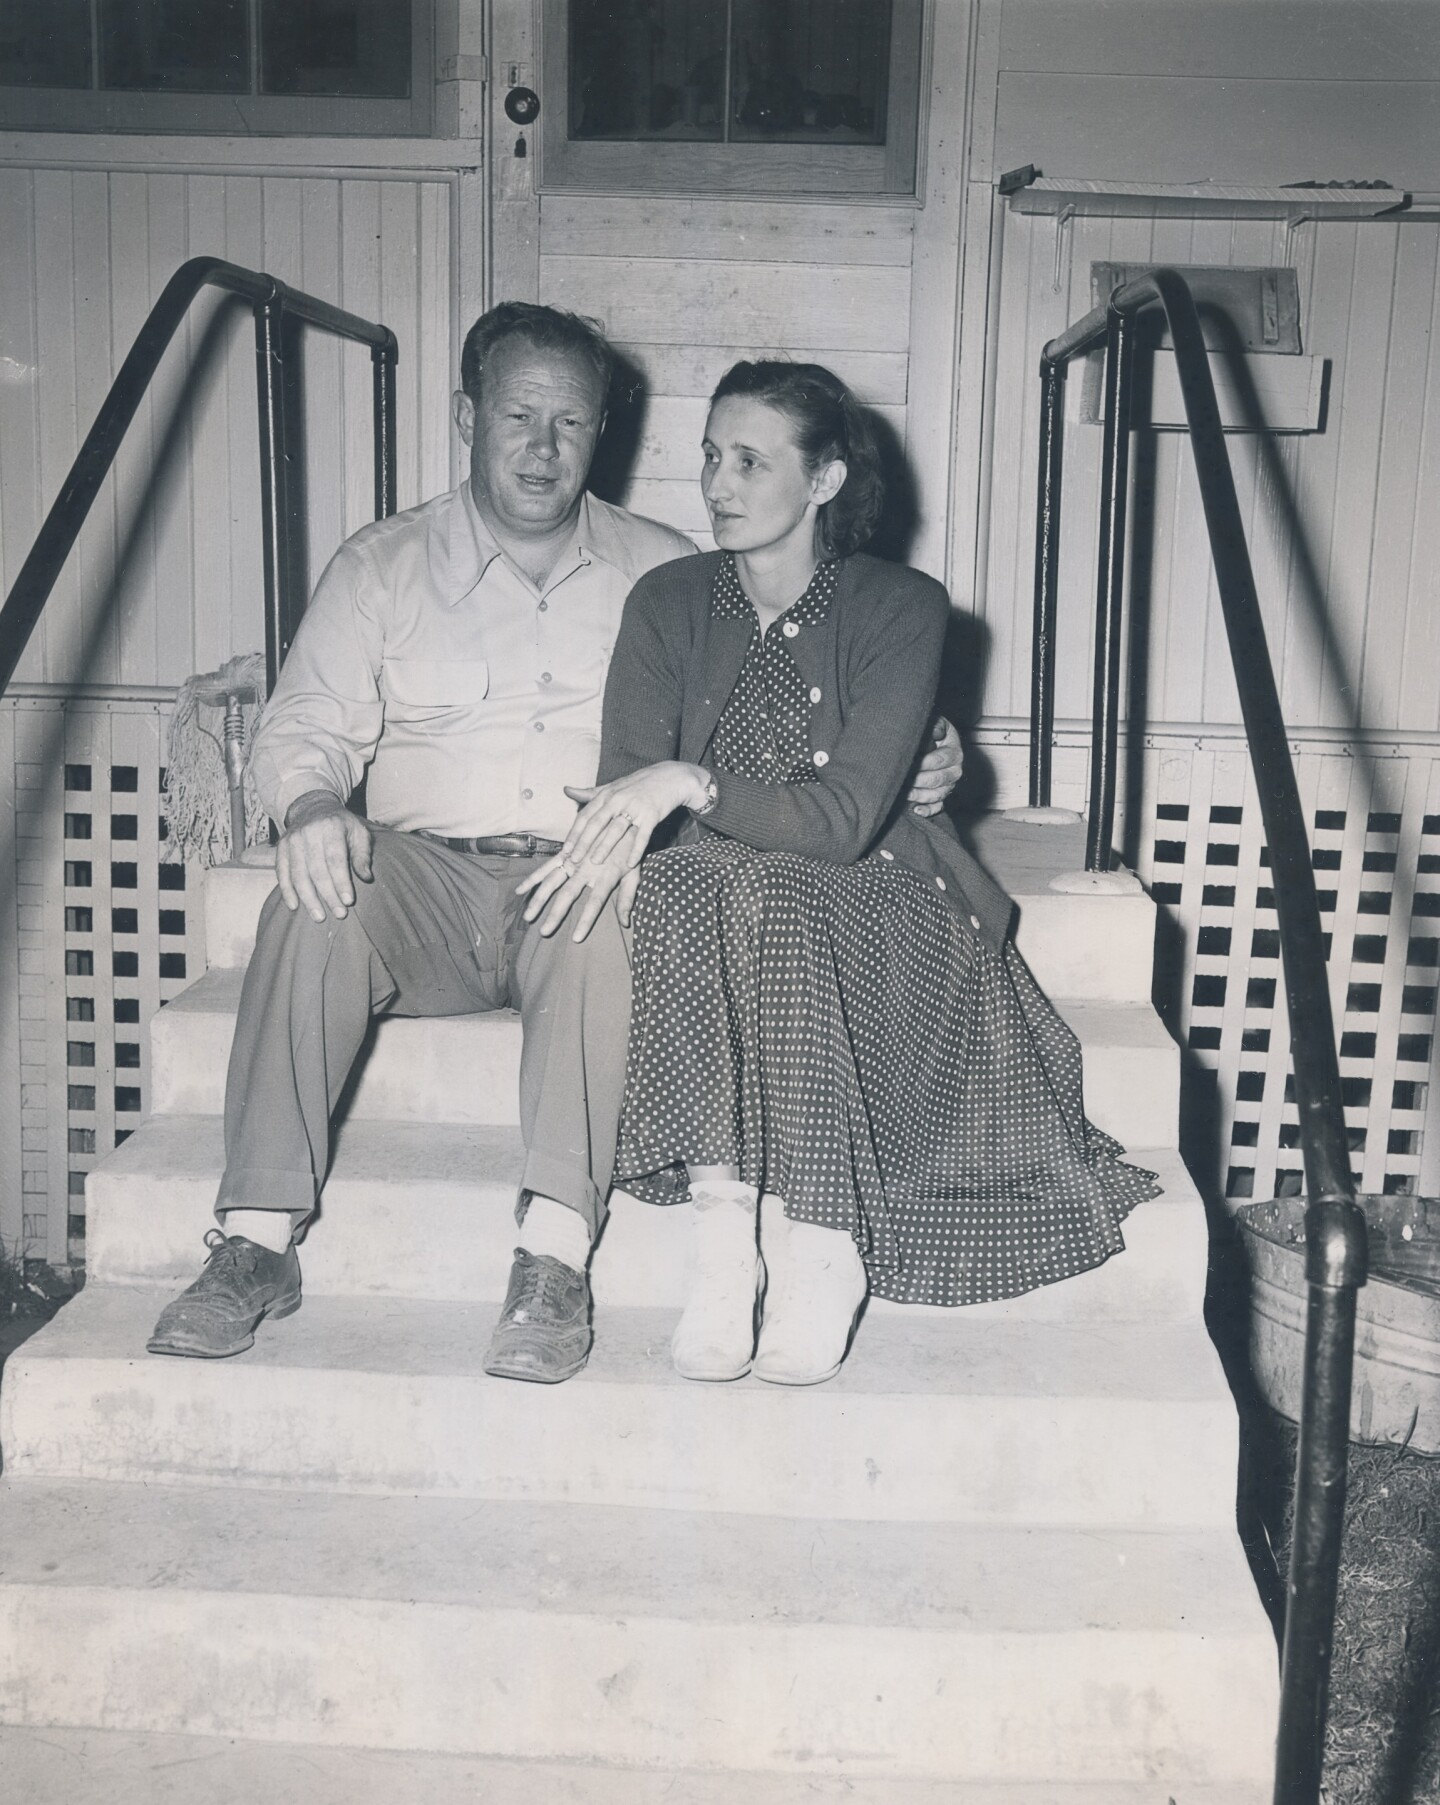 The married couple, Dave and Alice Fiscus, sit together on some steps for a photo.